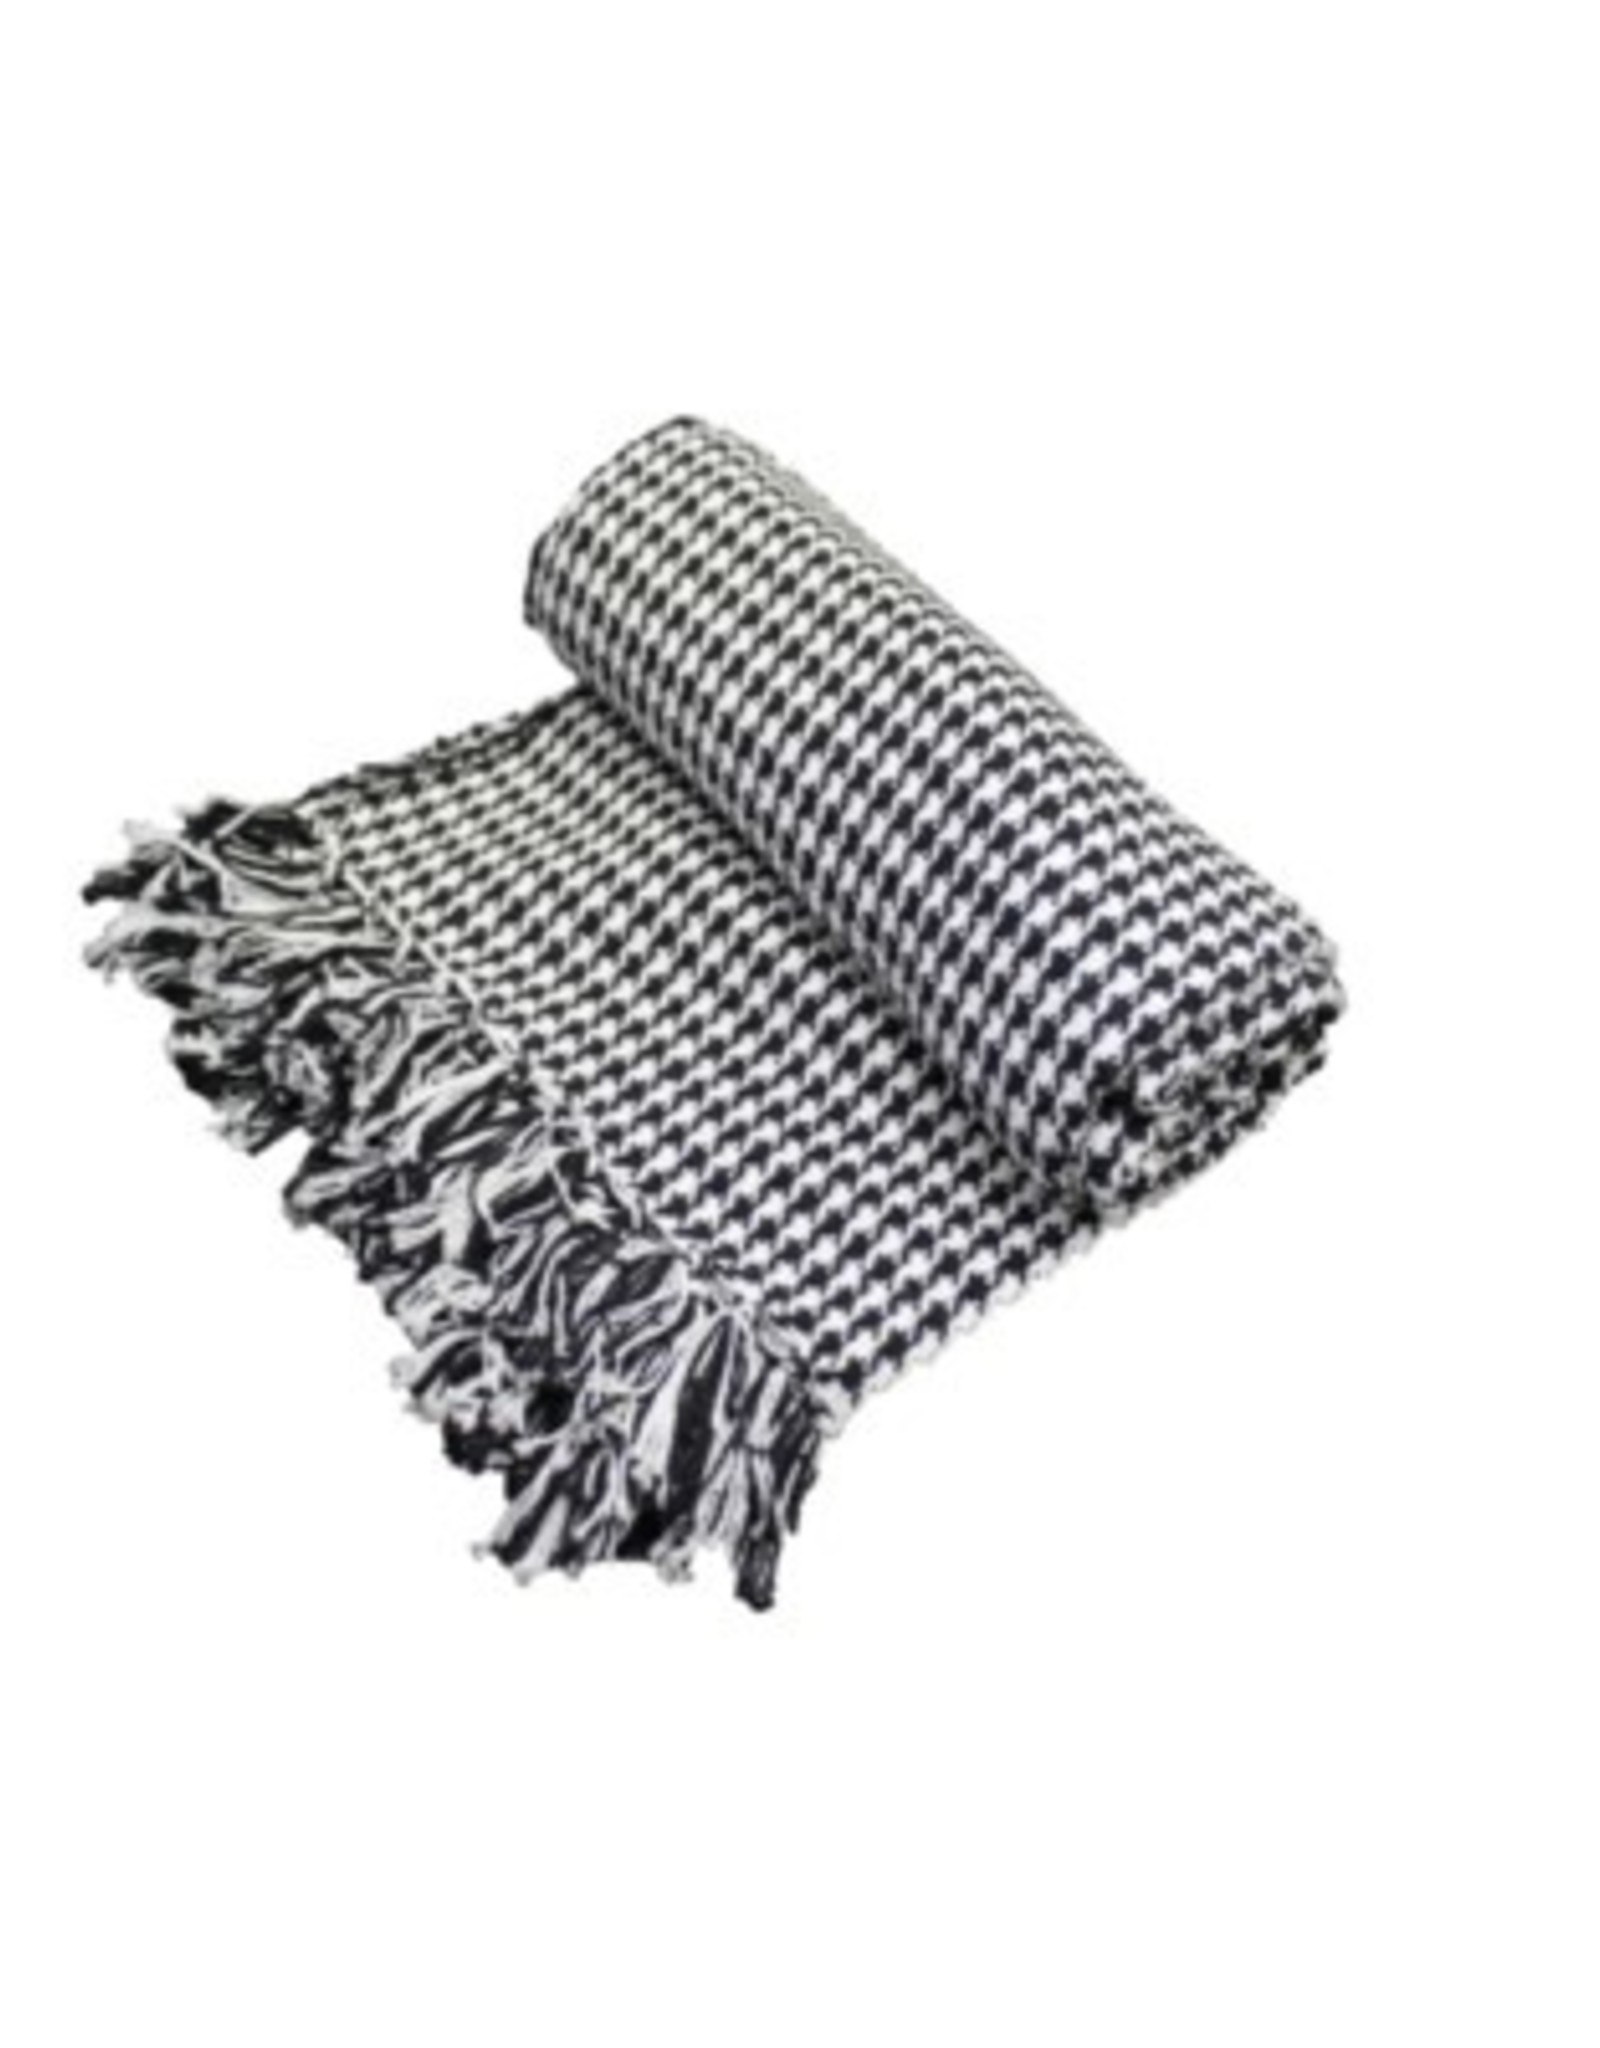 Fab Styles Throw Fab Styles Hounds Tooth Black / white50x60